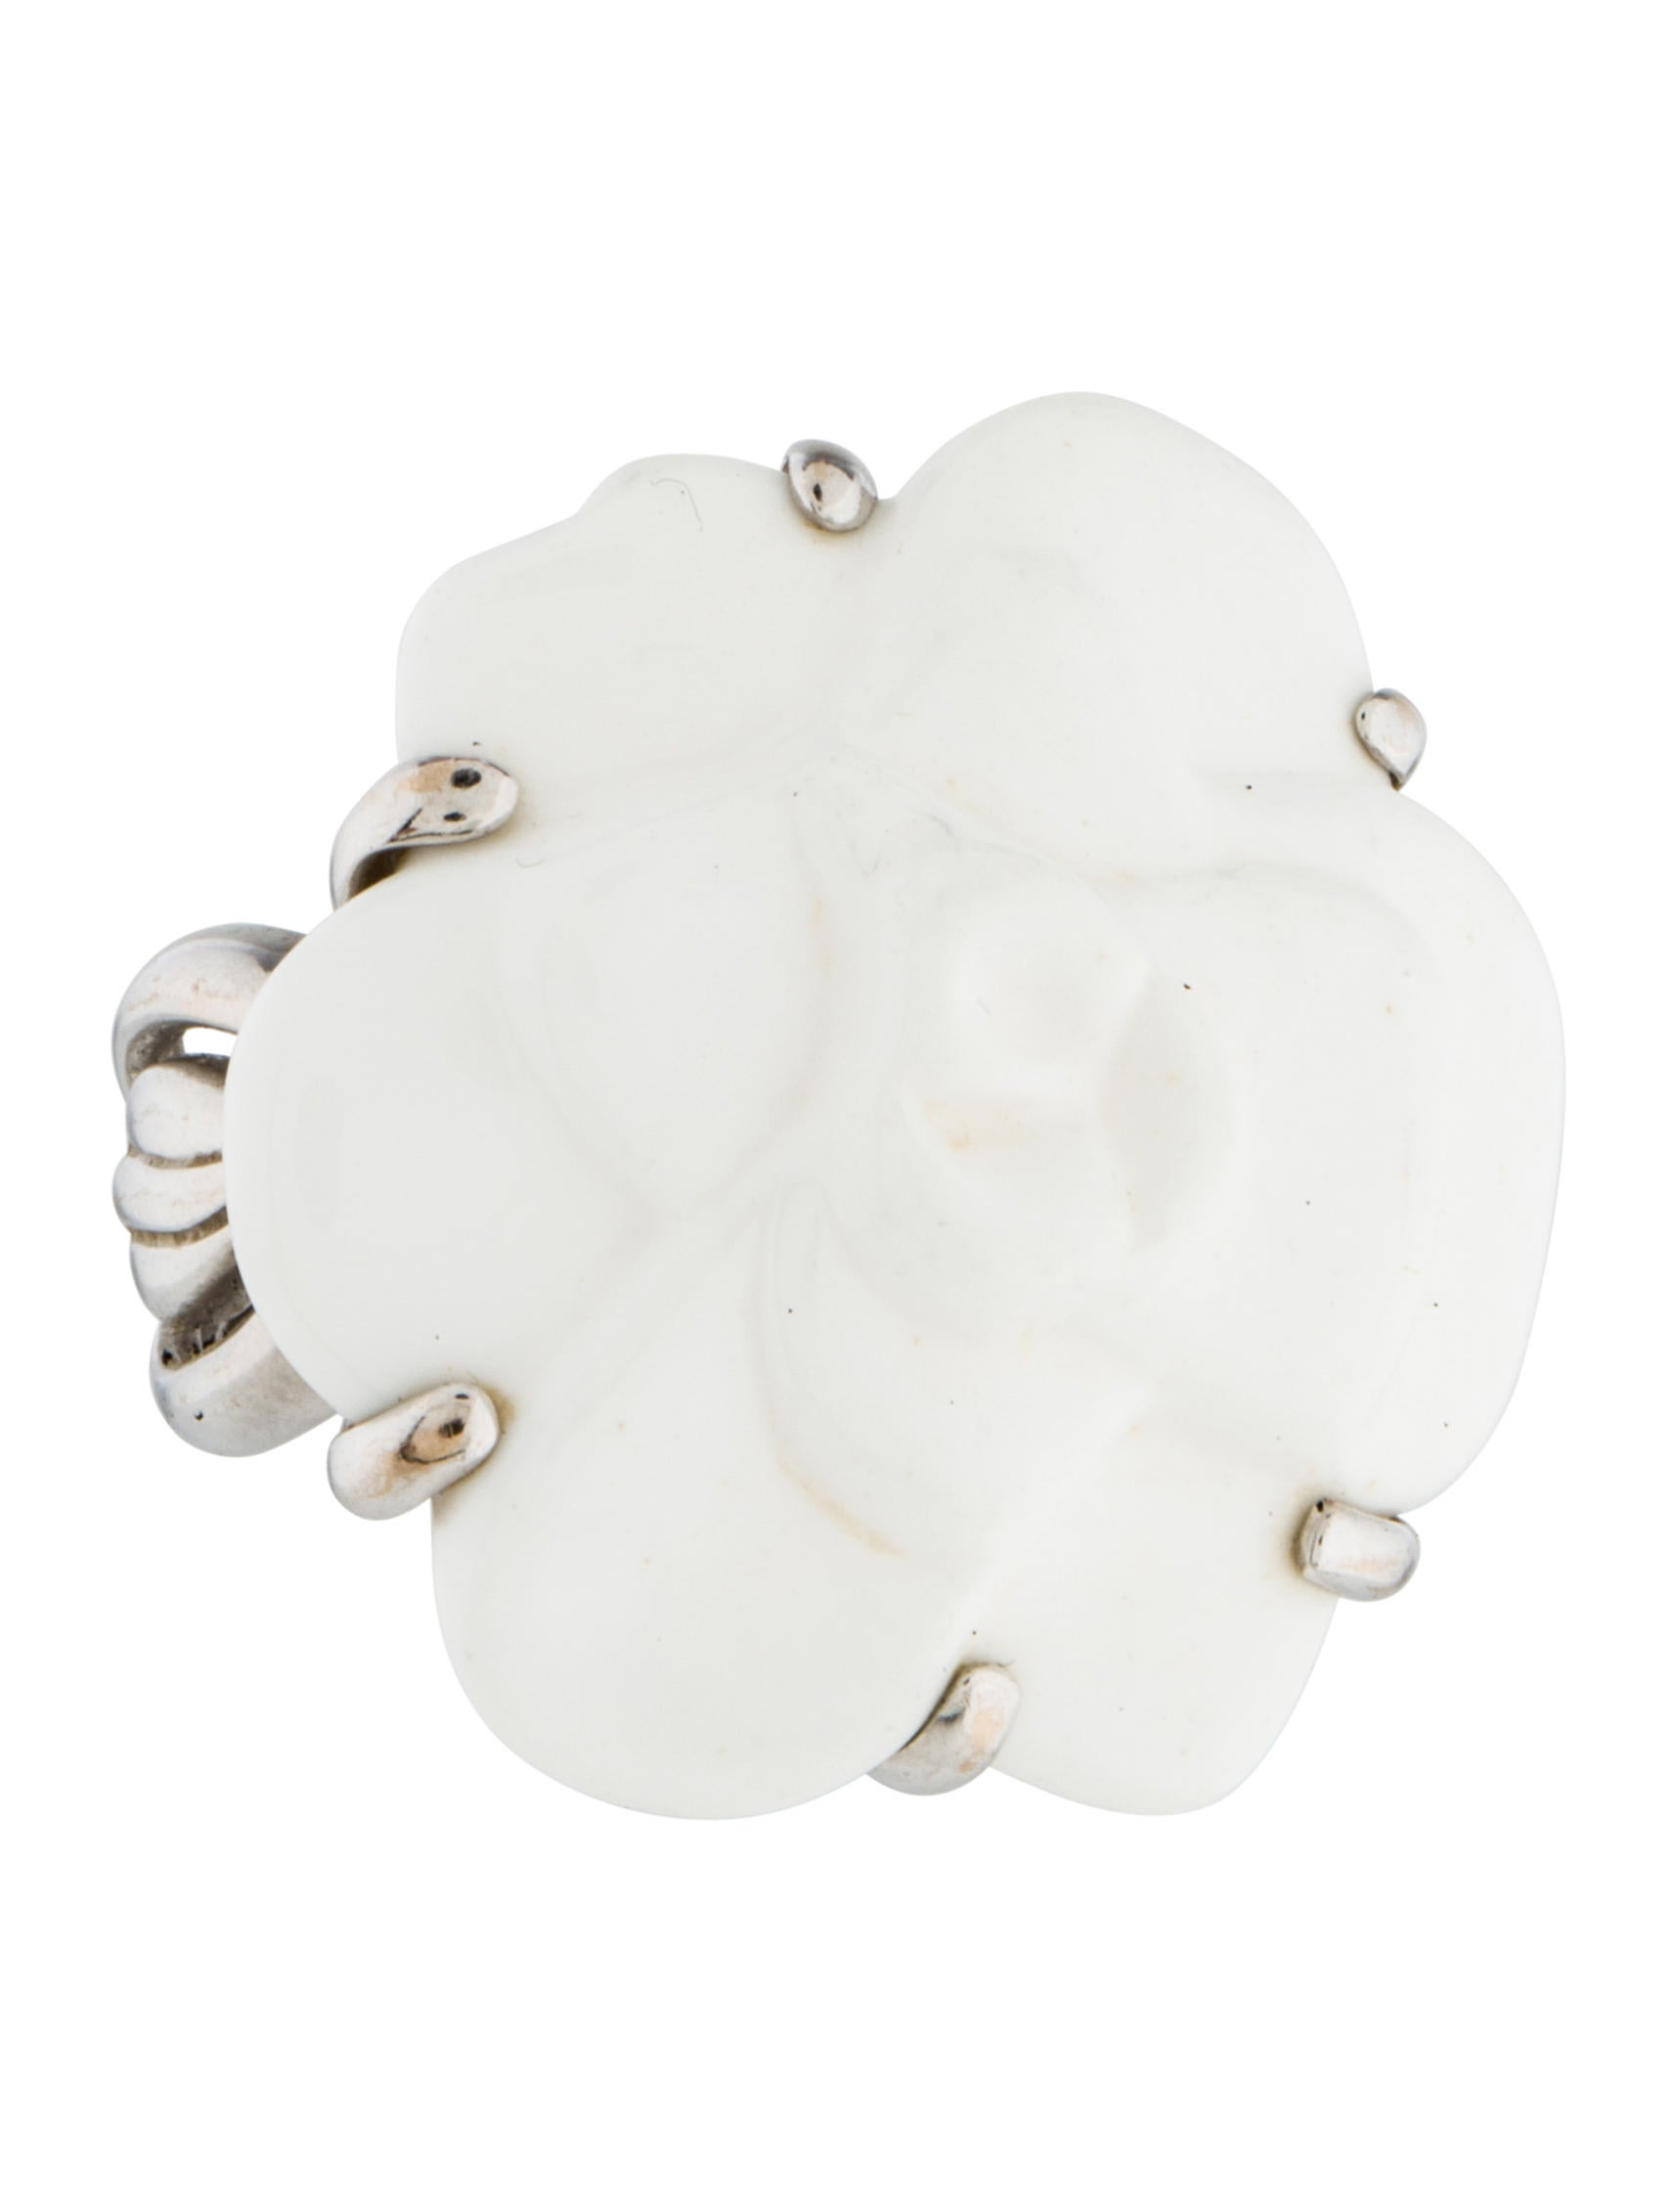 chanel rings i store en global introduce camellia ring market inc purpose this jewelry rakuten item